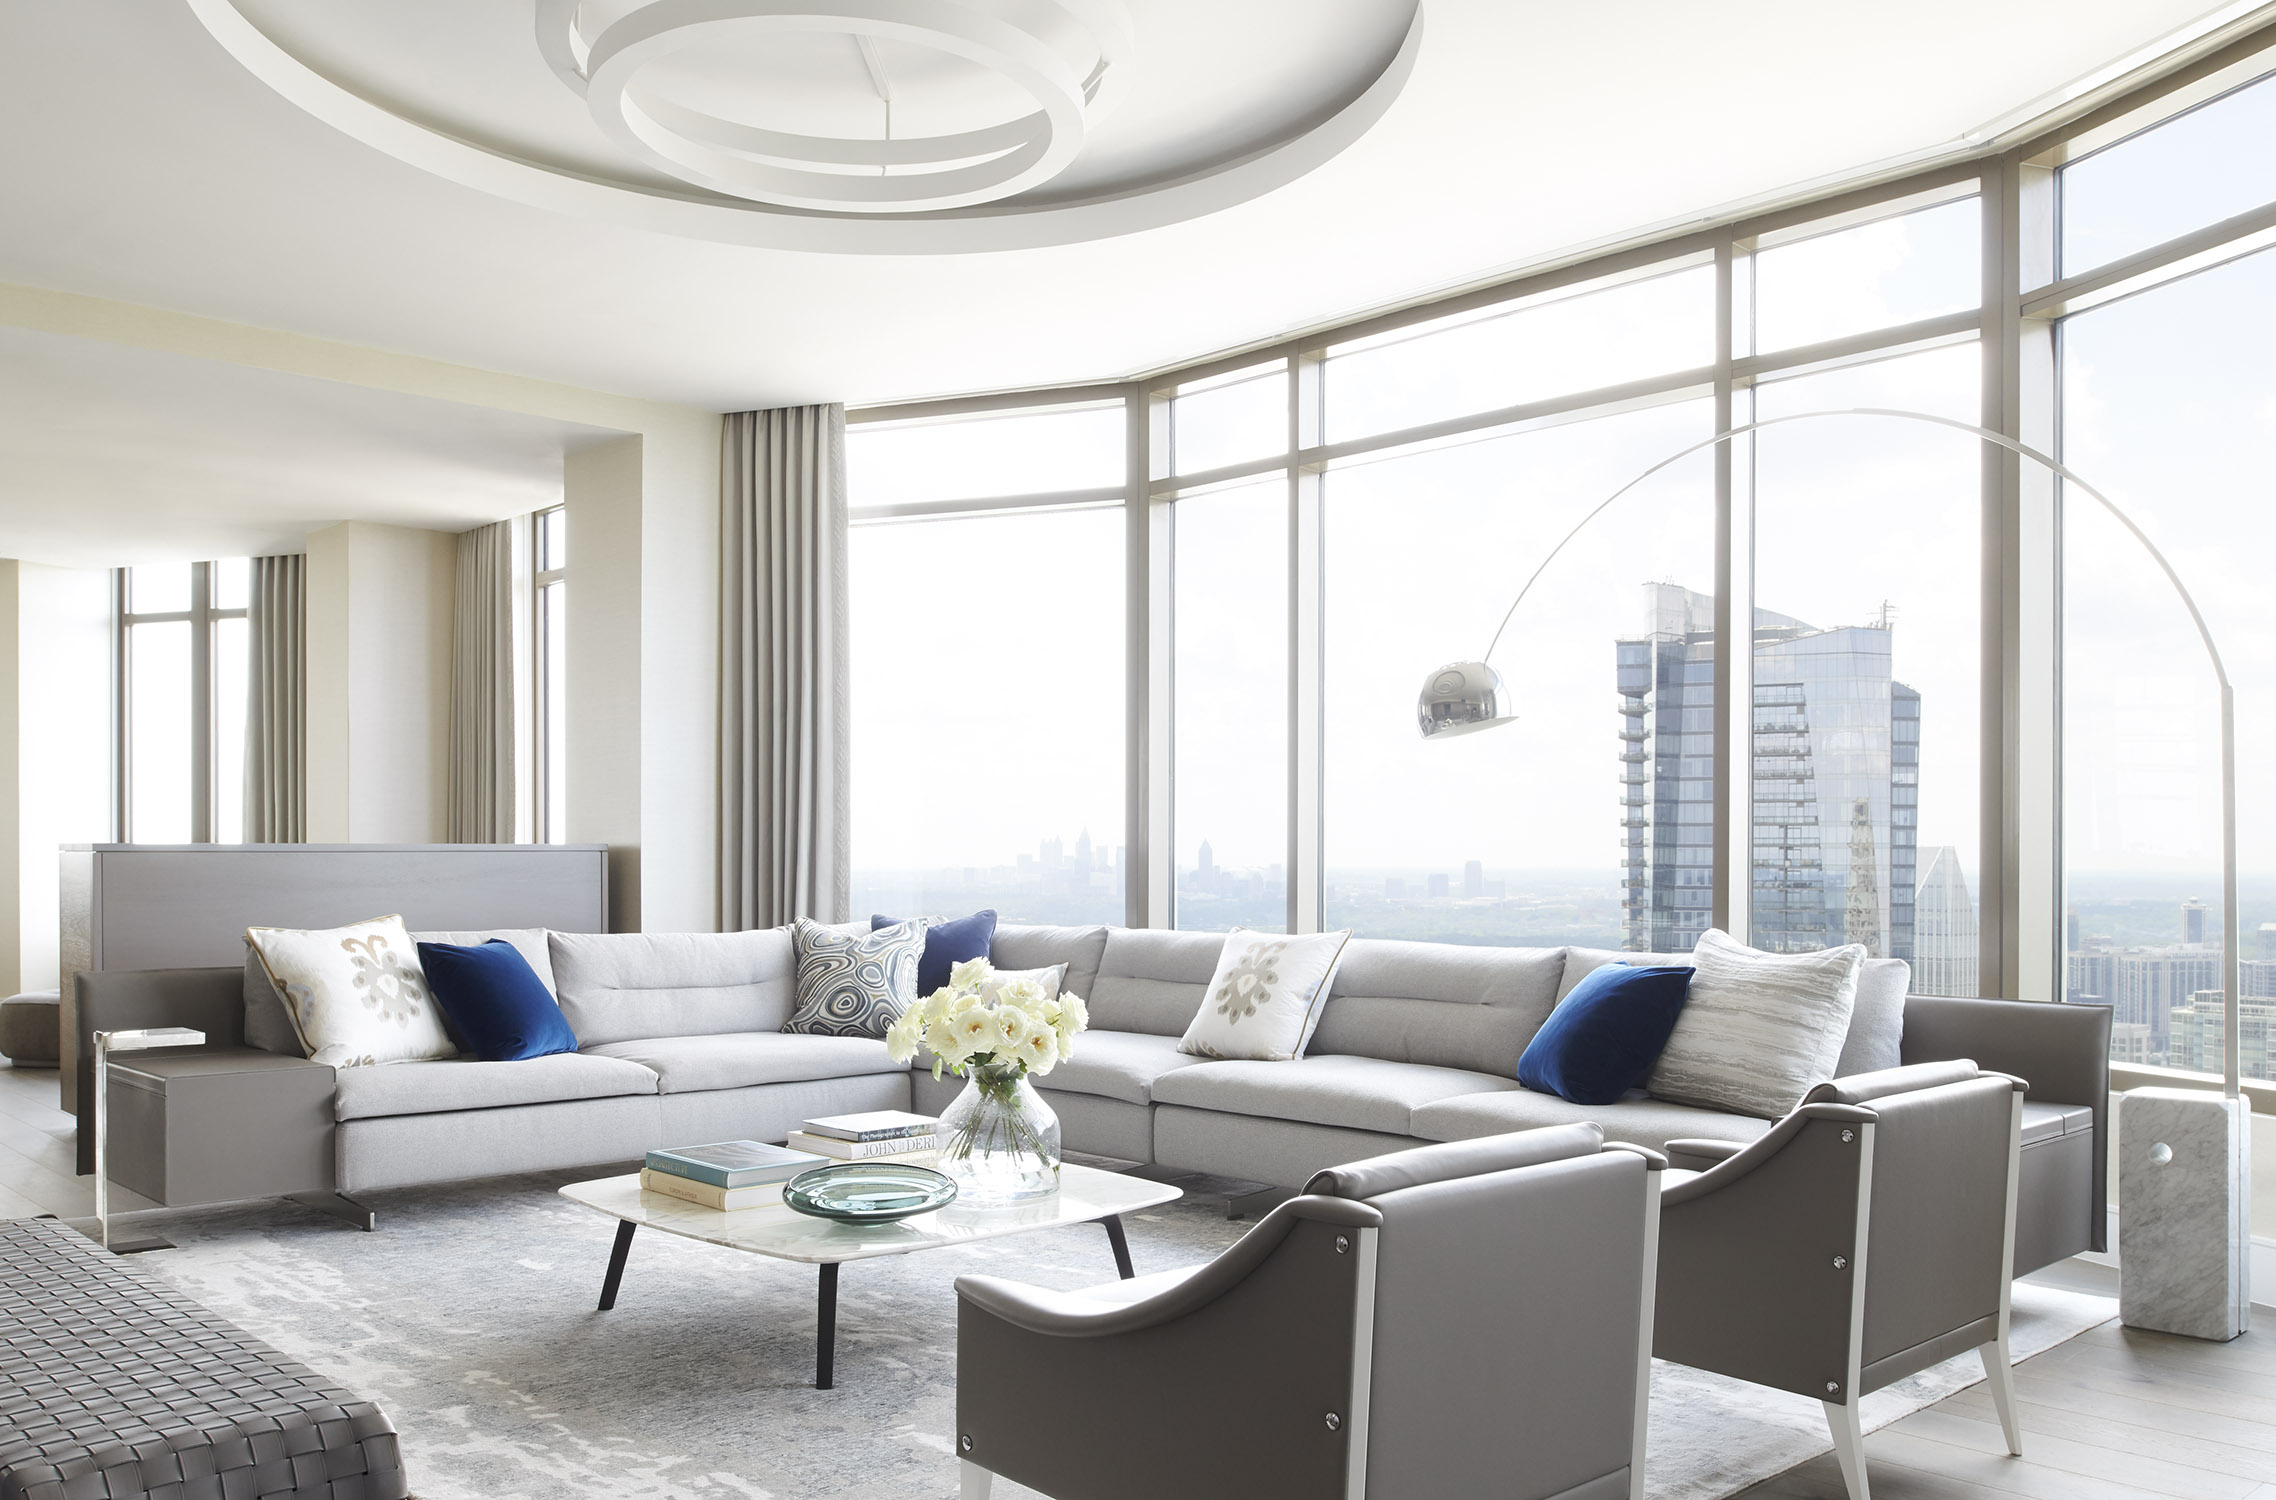 Modern living room with floor to ceiling windows featuring contemporary Italian furniture. Interiors by Harrison Design.